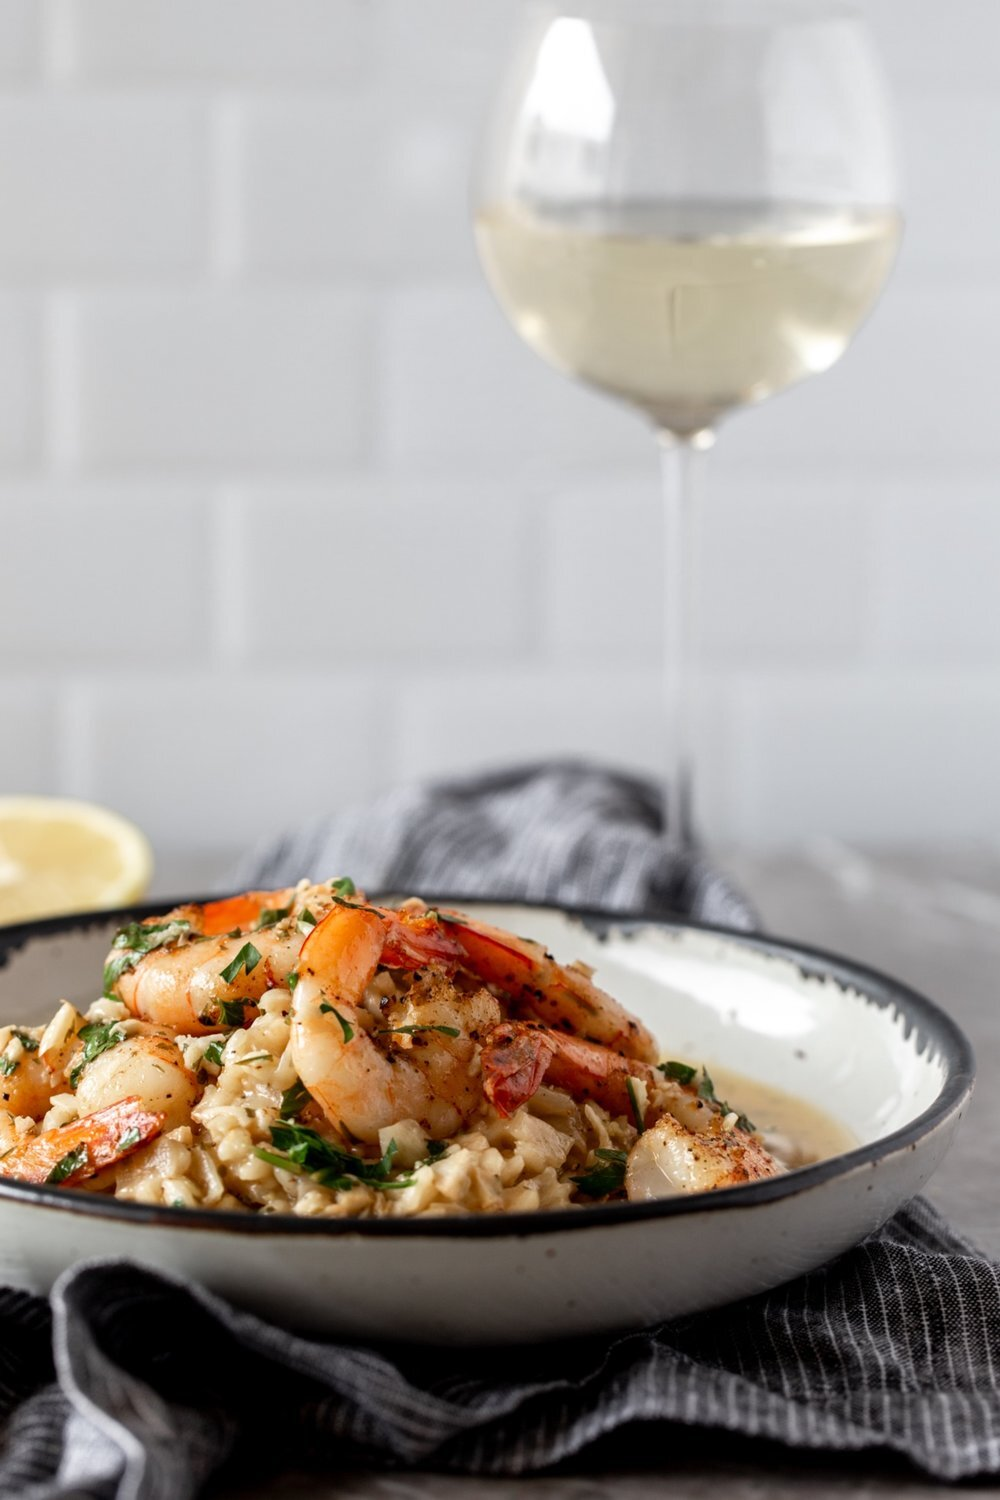 - Shrimp Scampi Risotto- Risotto can easily be doubled or tripled for larger dinner parties and this scampi sauce can also be served over pasta.